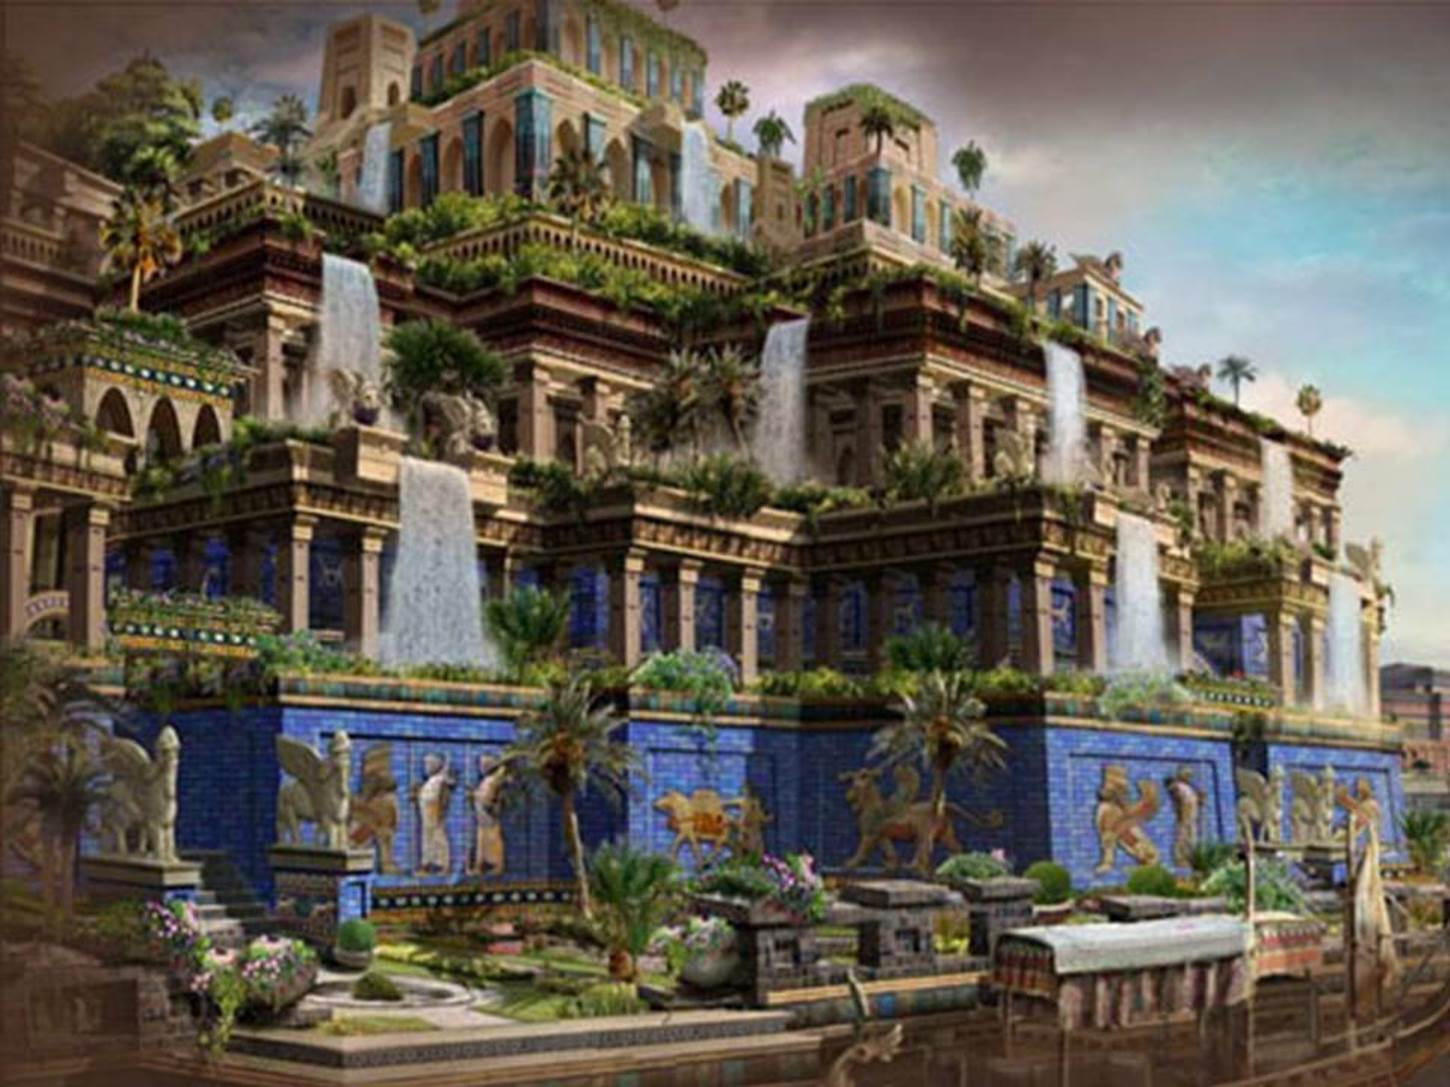 Babylonian hanging garden pictures Hanging Gardens of Babylon History Pictures m